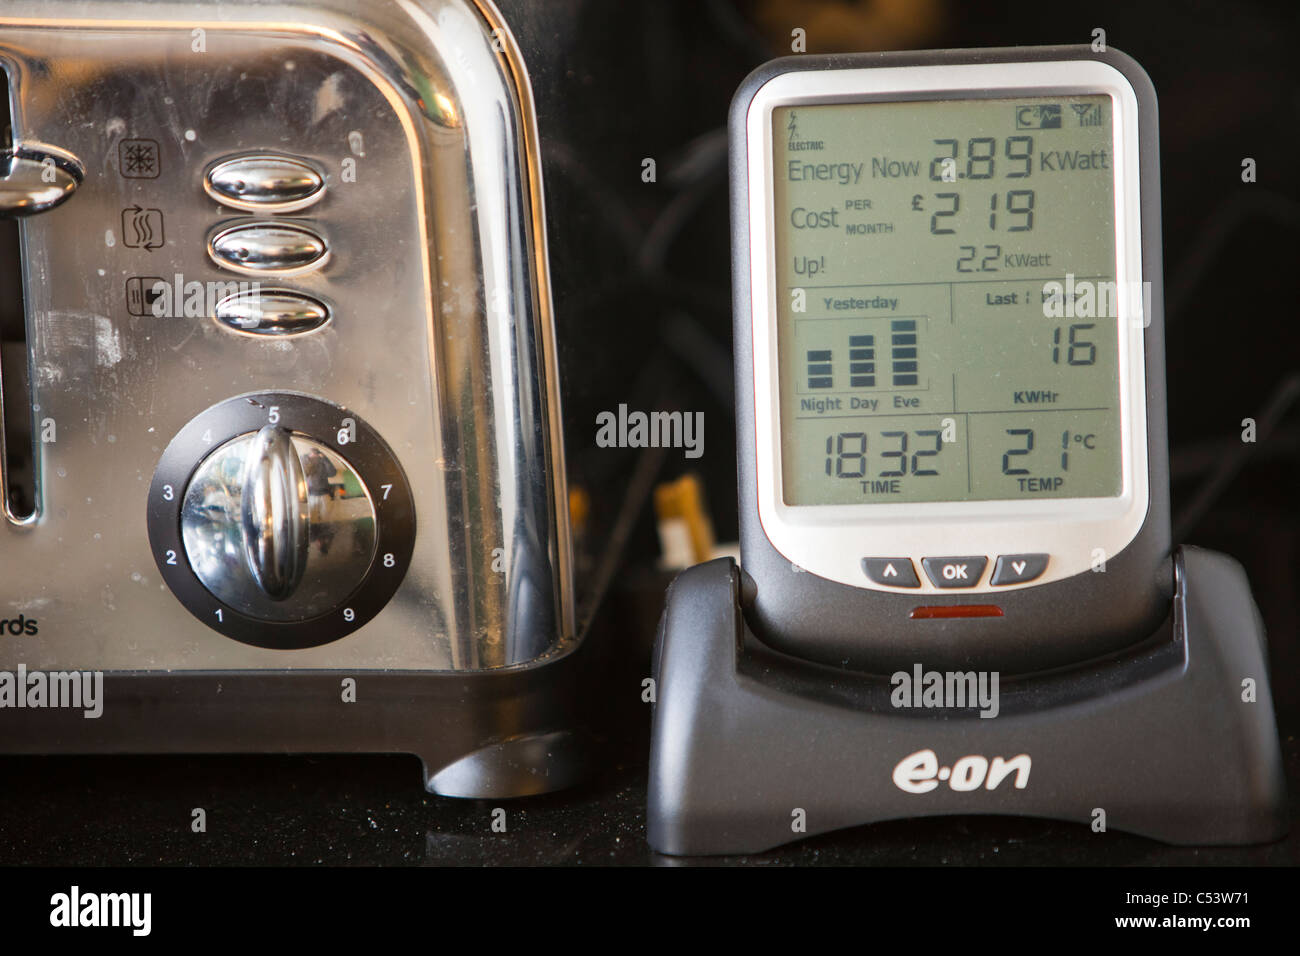 A Smart meter for measuring household electricity use. - Stock Image